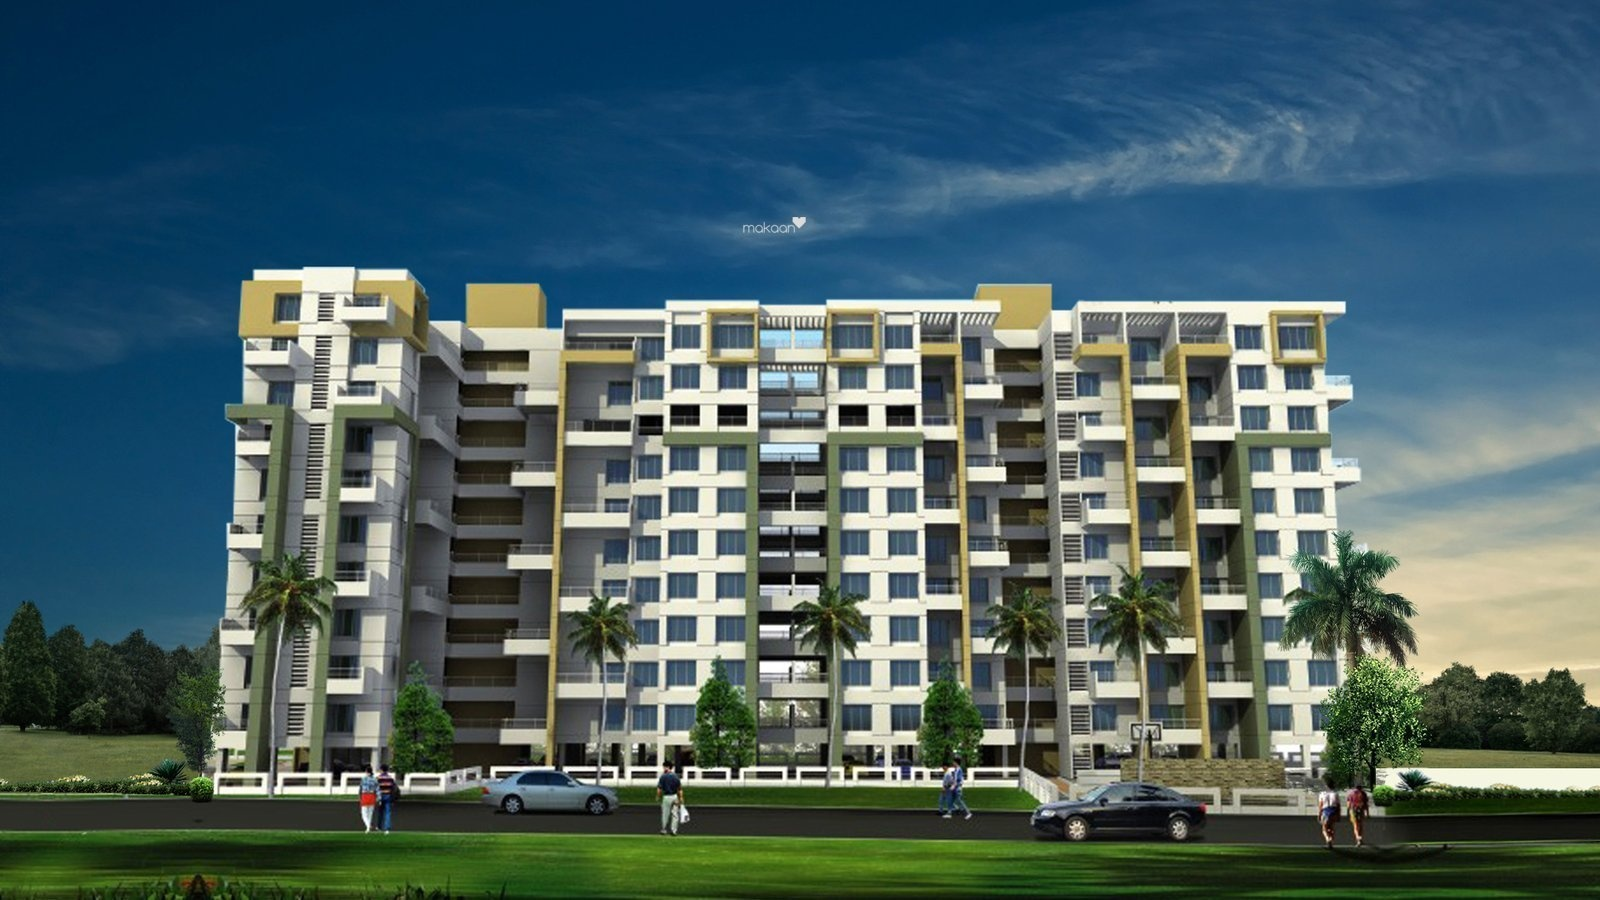 1120 sq ft 2BHK 2BHK+2T (1,120 sq ft) Property By Raviraj Real Estate In Albacitta, Baner